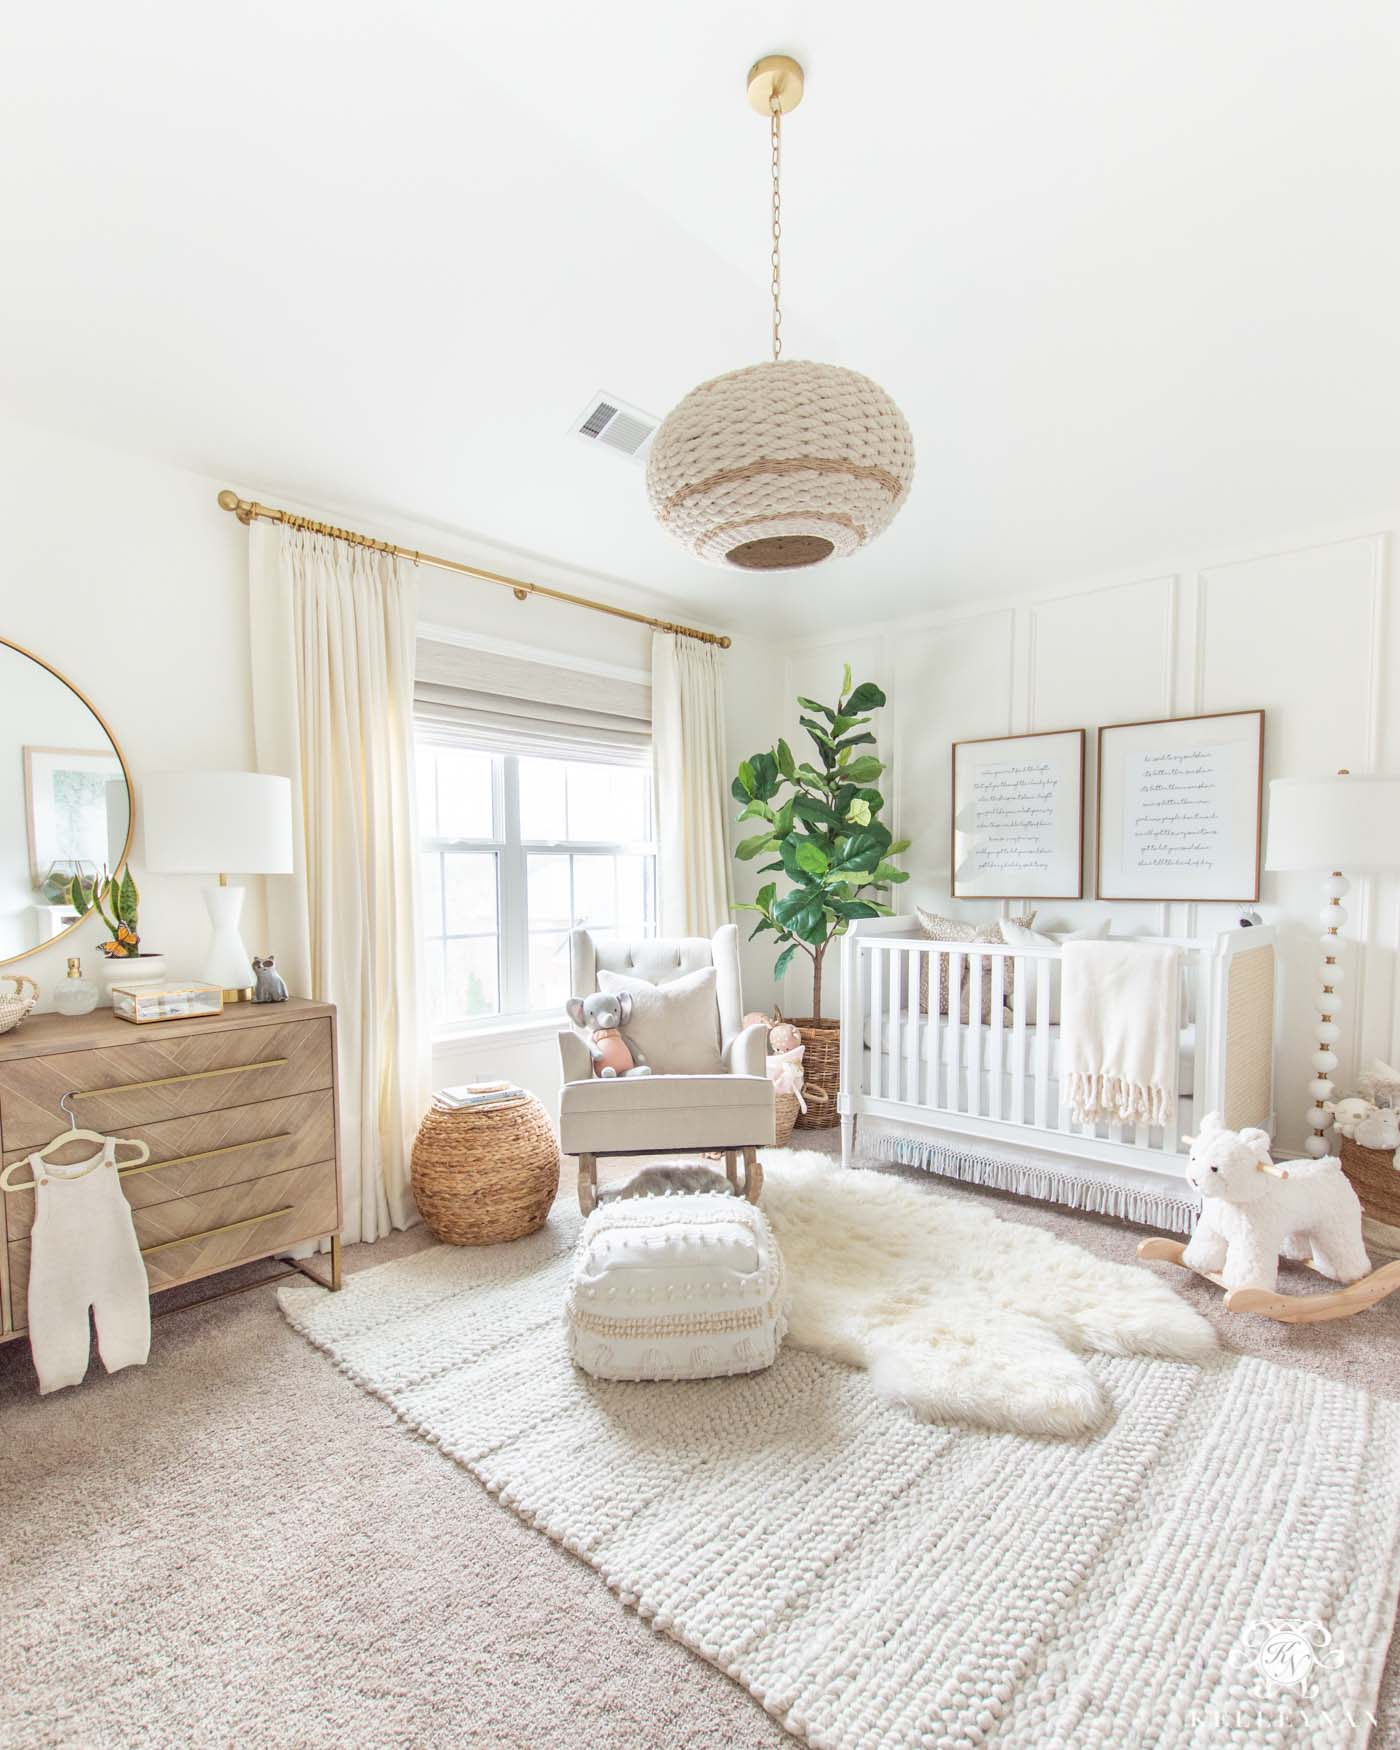 Inexpensive Nursery Decor Look-Alikes for a Beautiful Gender Neutral Nursery